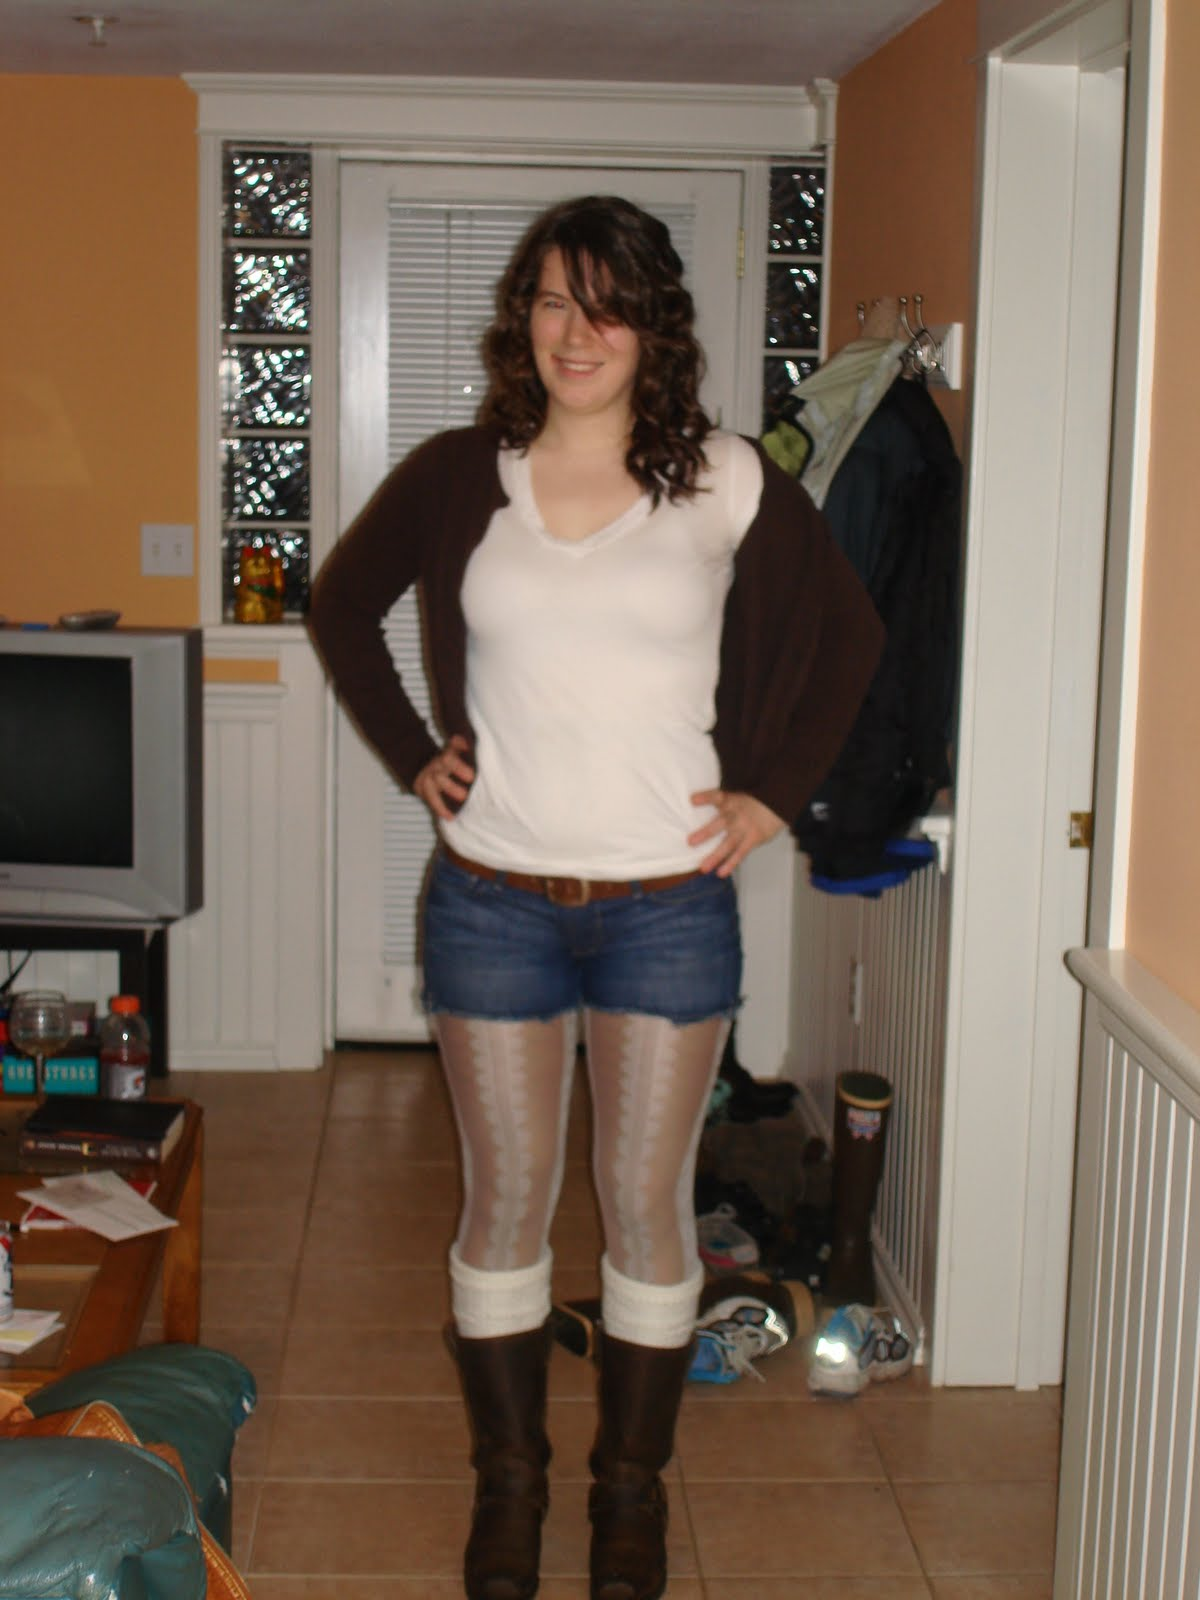 Leggings And Boots http://diagonalleftandrightstyle.blogspot.com/2011/02/shiny-printed-tights.html